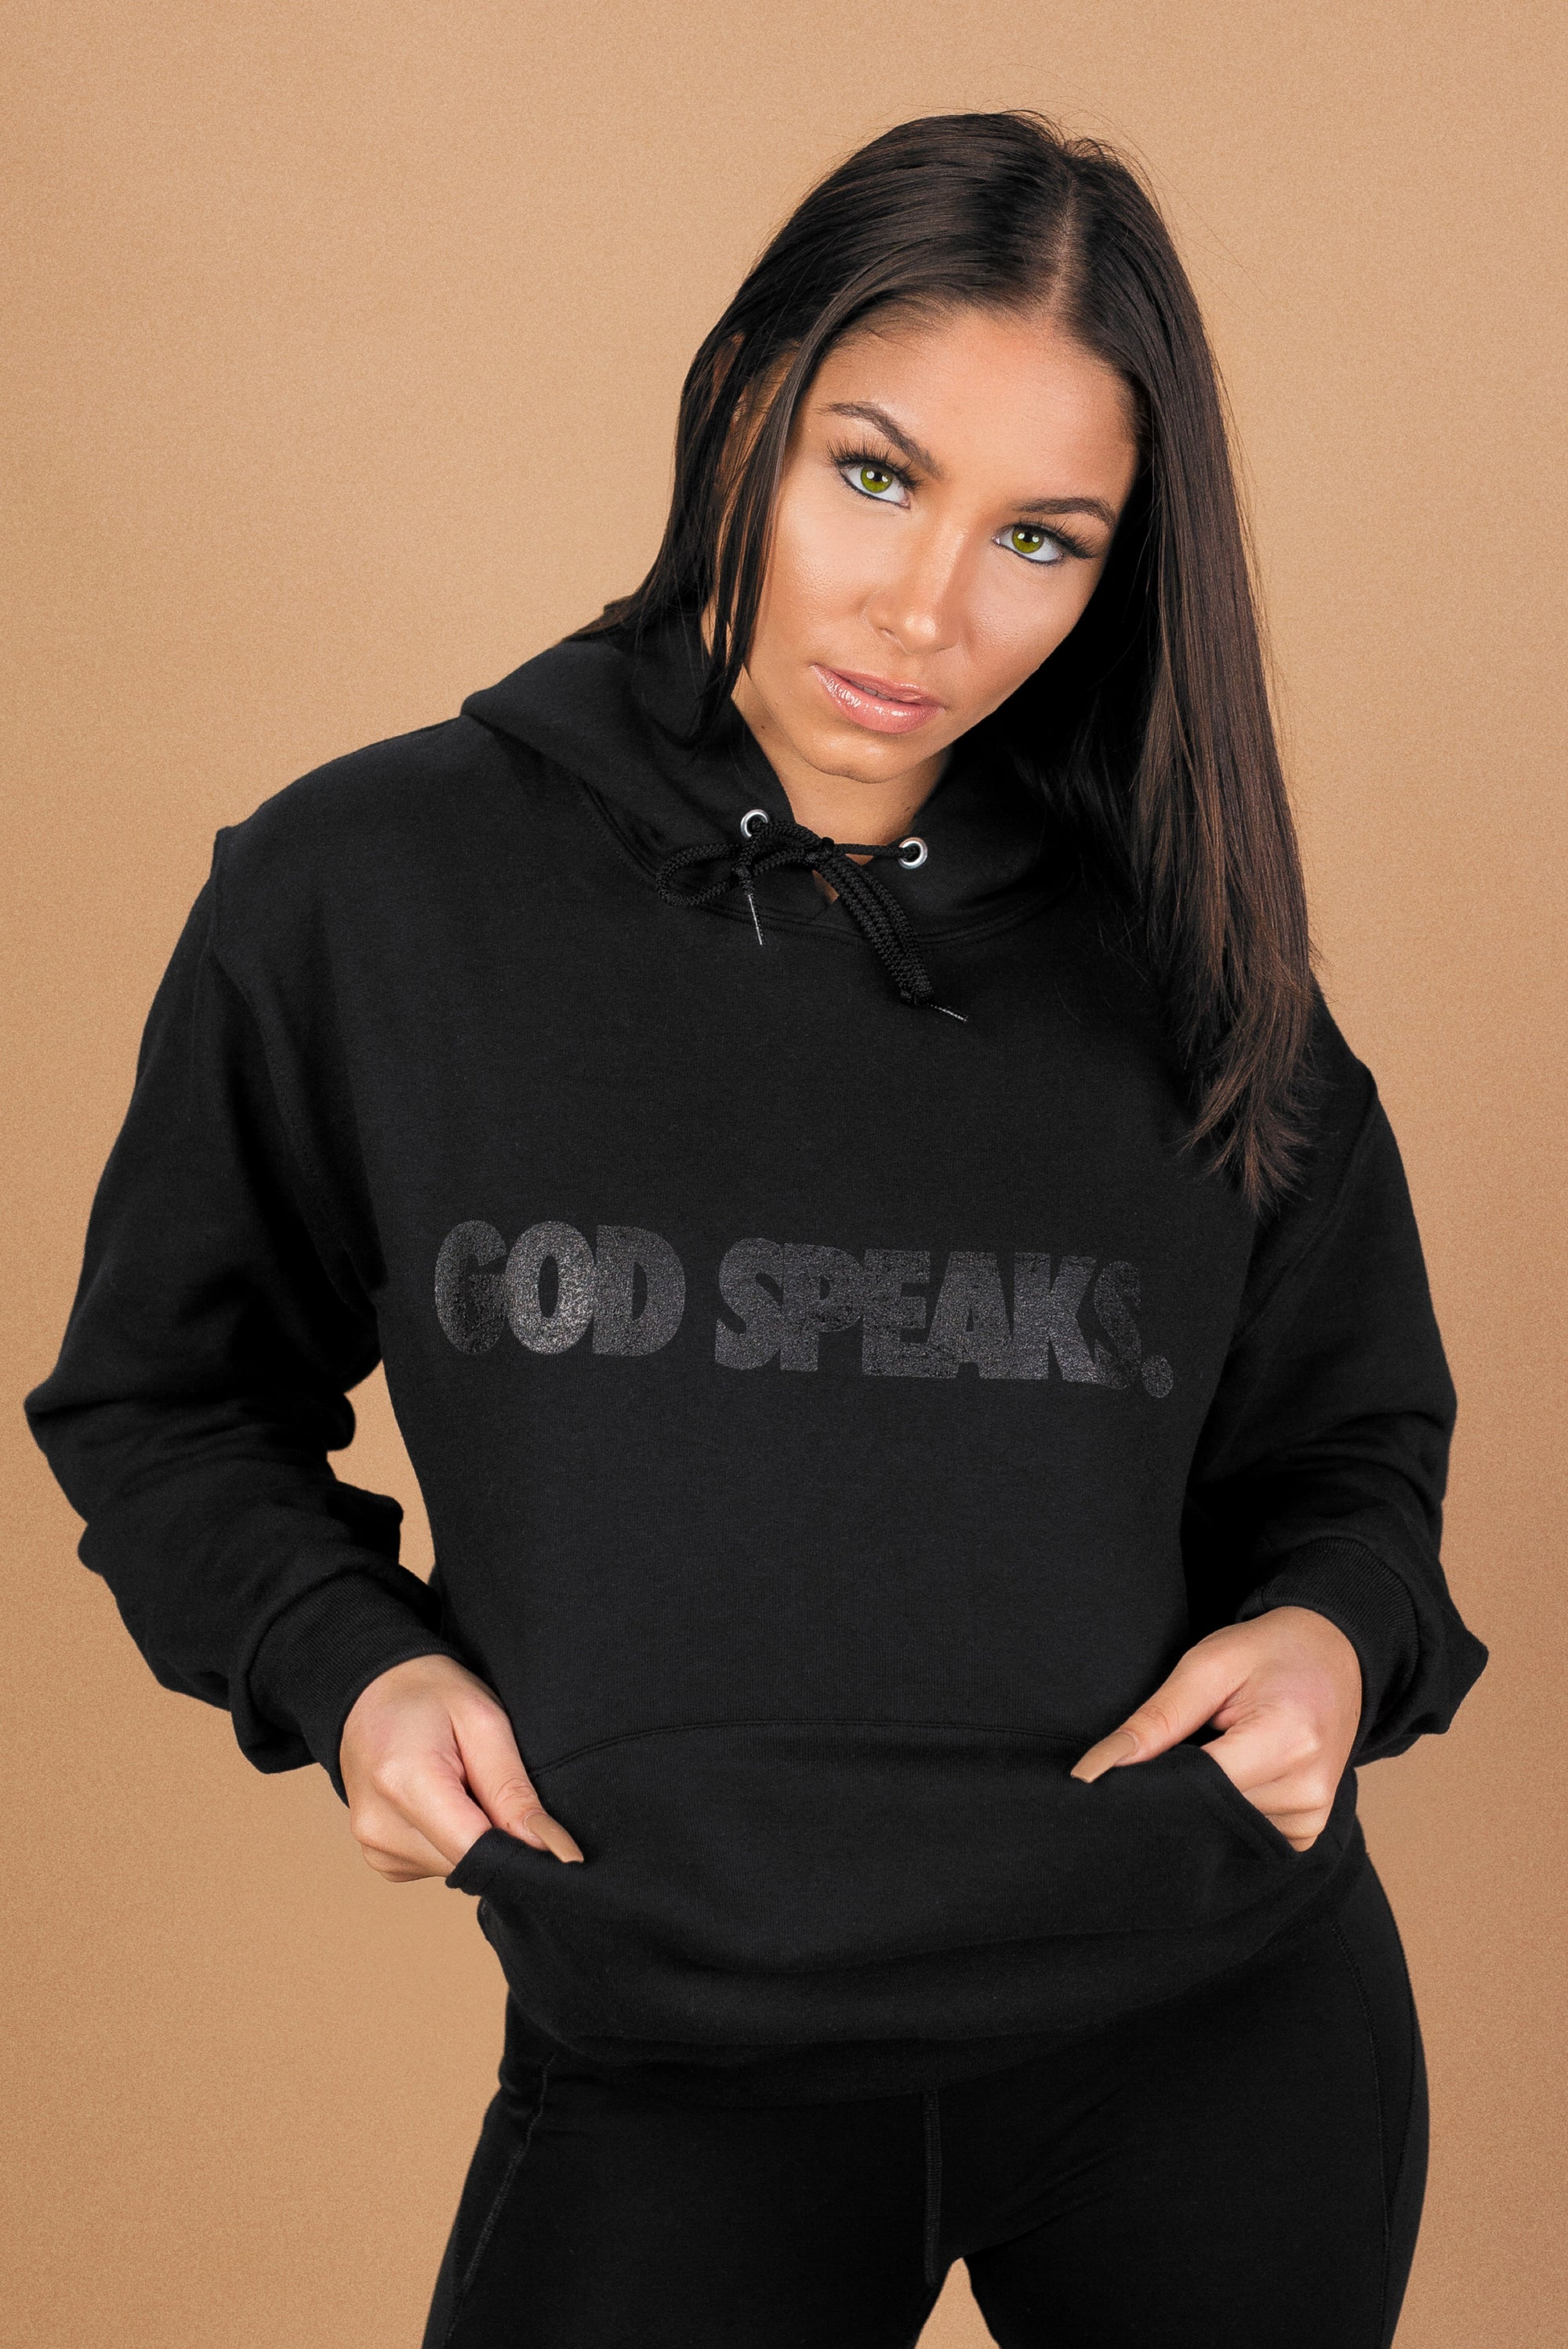 GOD SPEAKS HOODIE (TRIPLE BLACK)